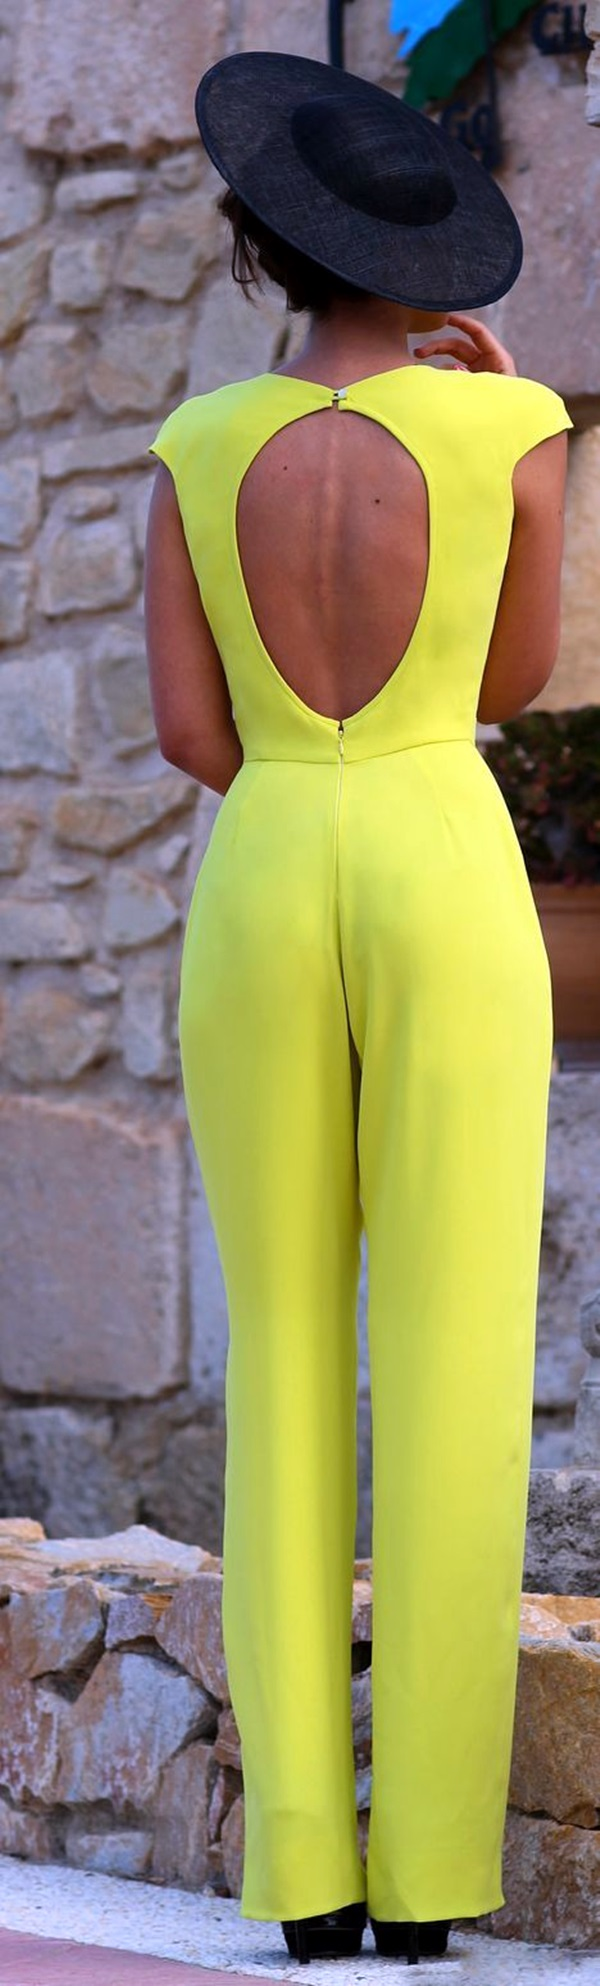 Neon Fashion Outfits for Teens (2)